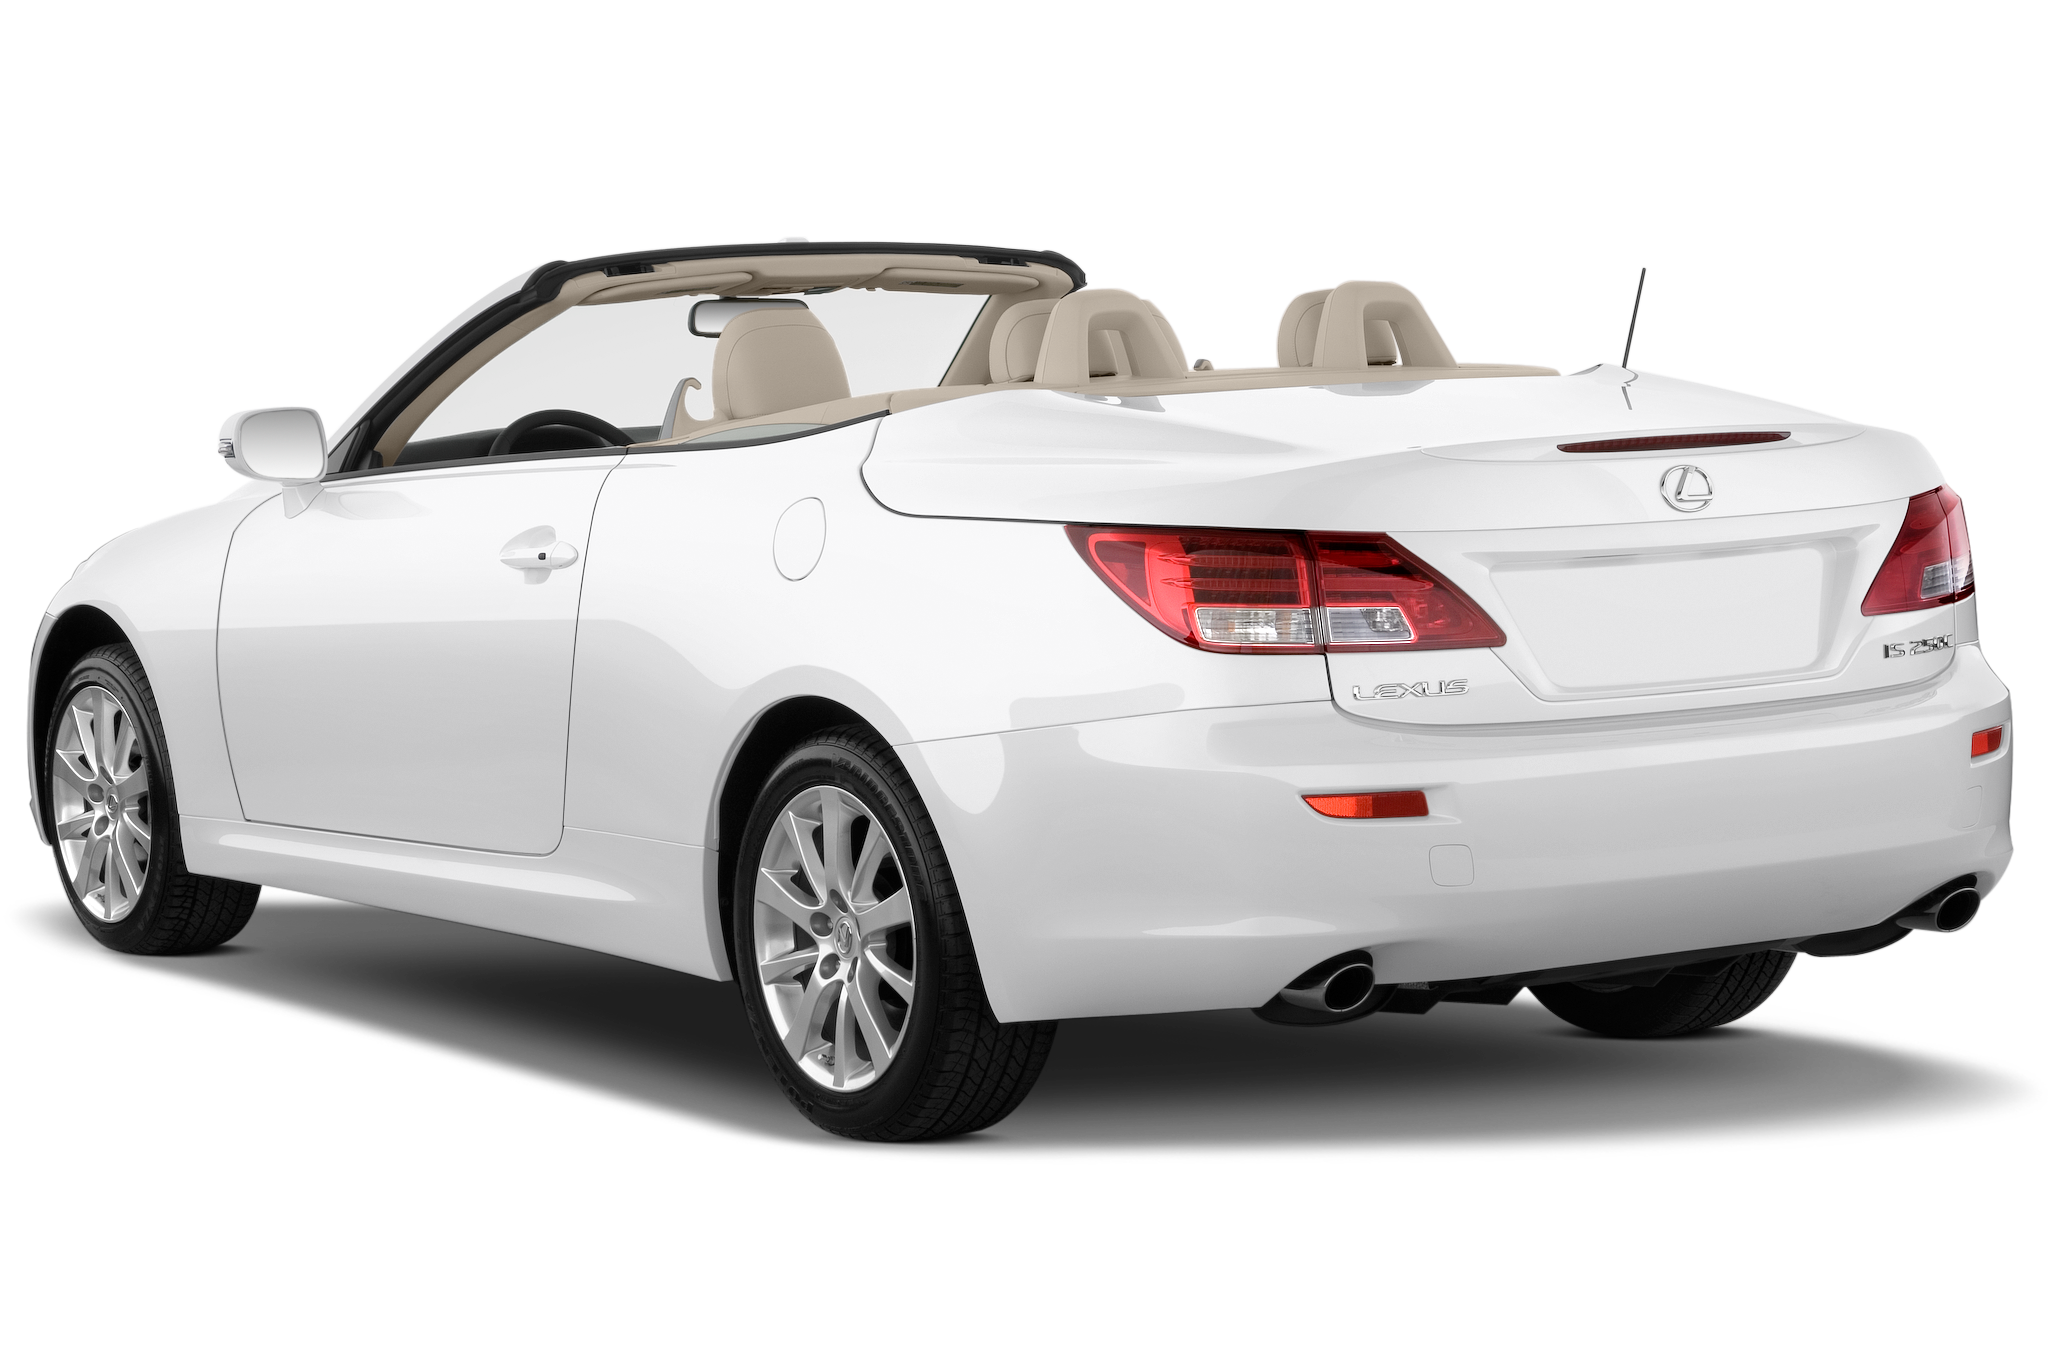 used lexus convertibles for sale with photos carfax autos post. Black Bedroom Furniture Sets. Home Design Ideas